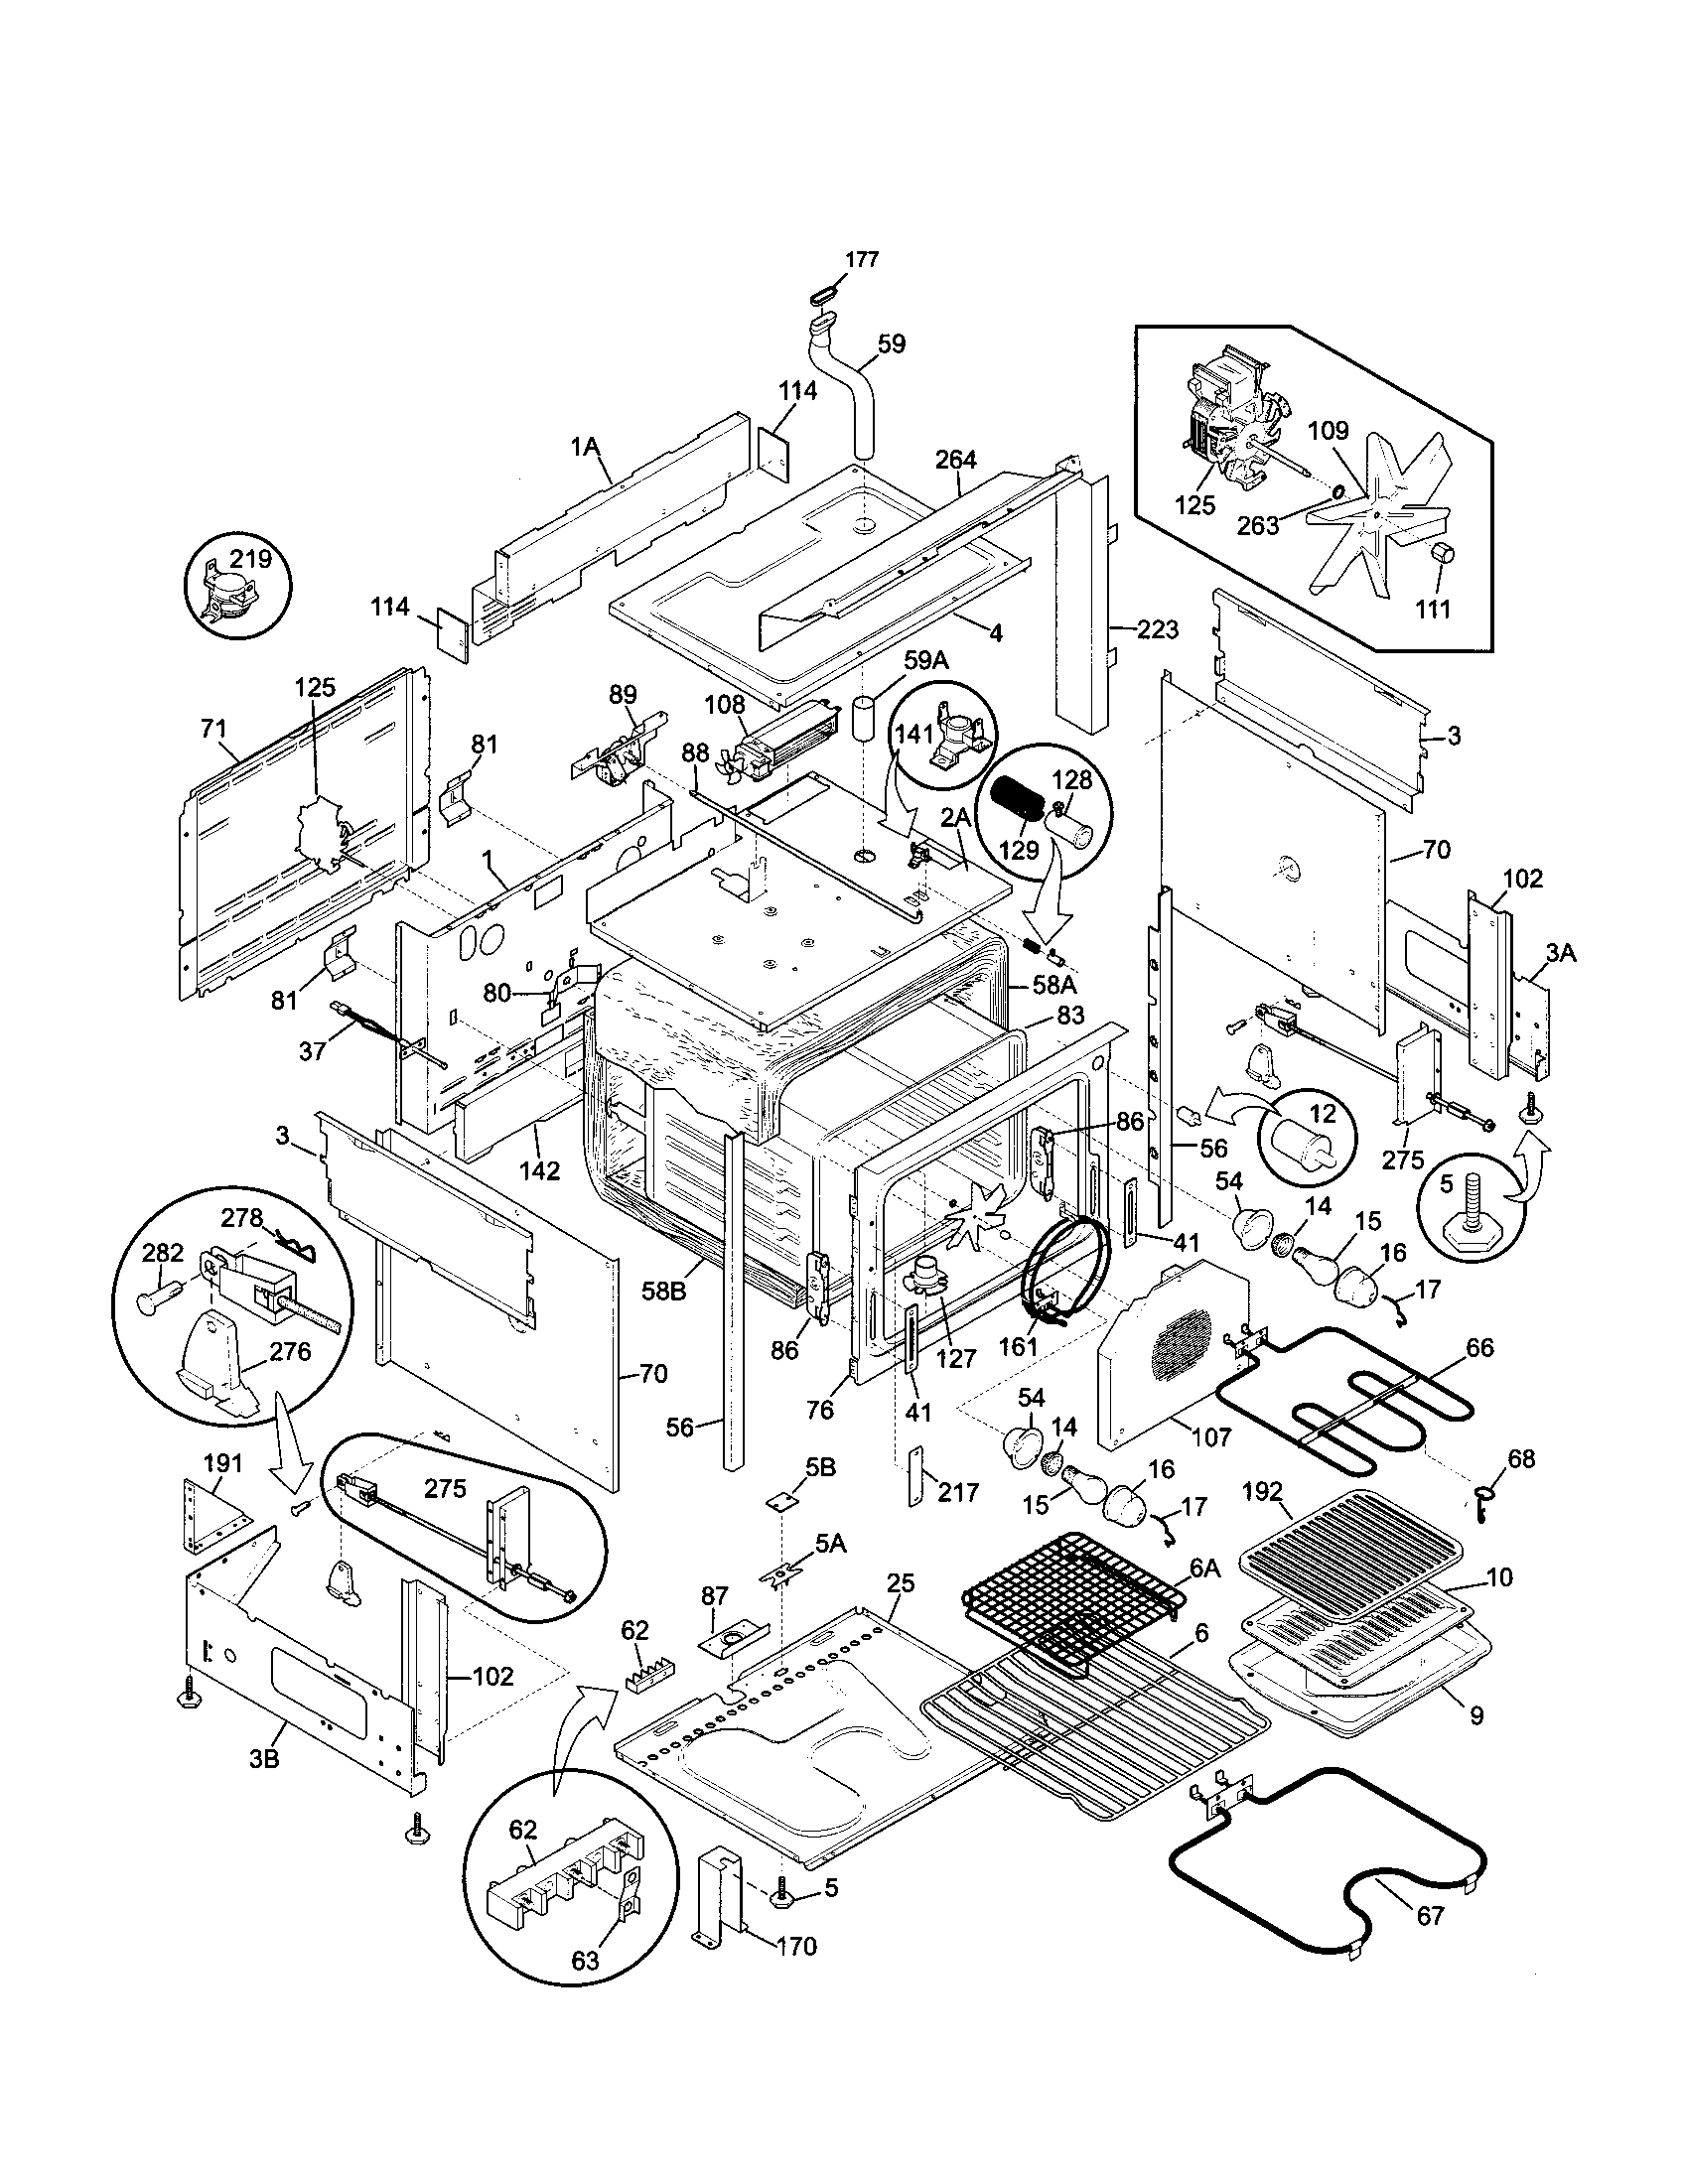 body parts kenmore ultra wash dishwasher wiring diagram efcaviation com Kenmore Elite Dryer Diagram at creativeand.co